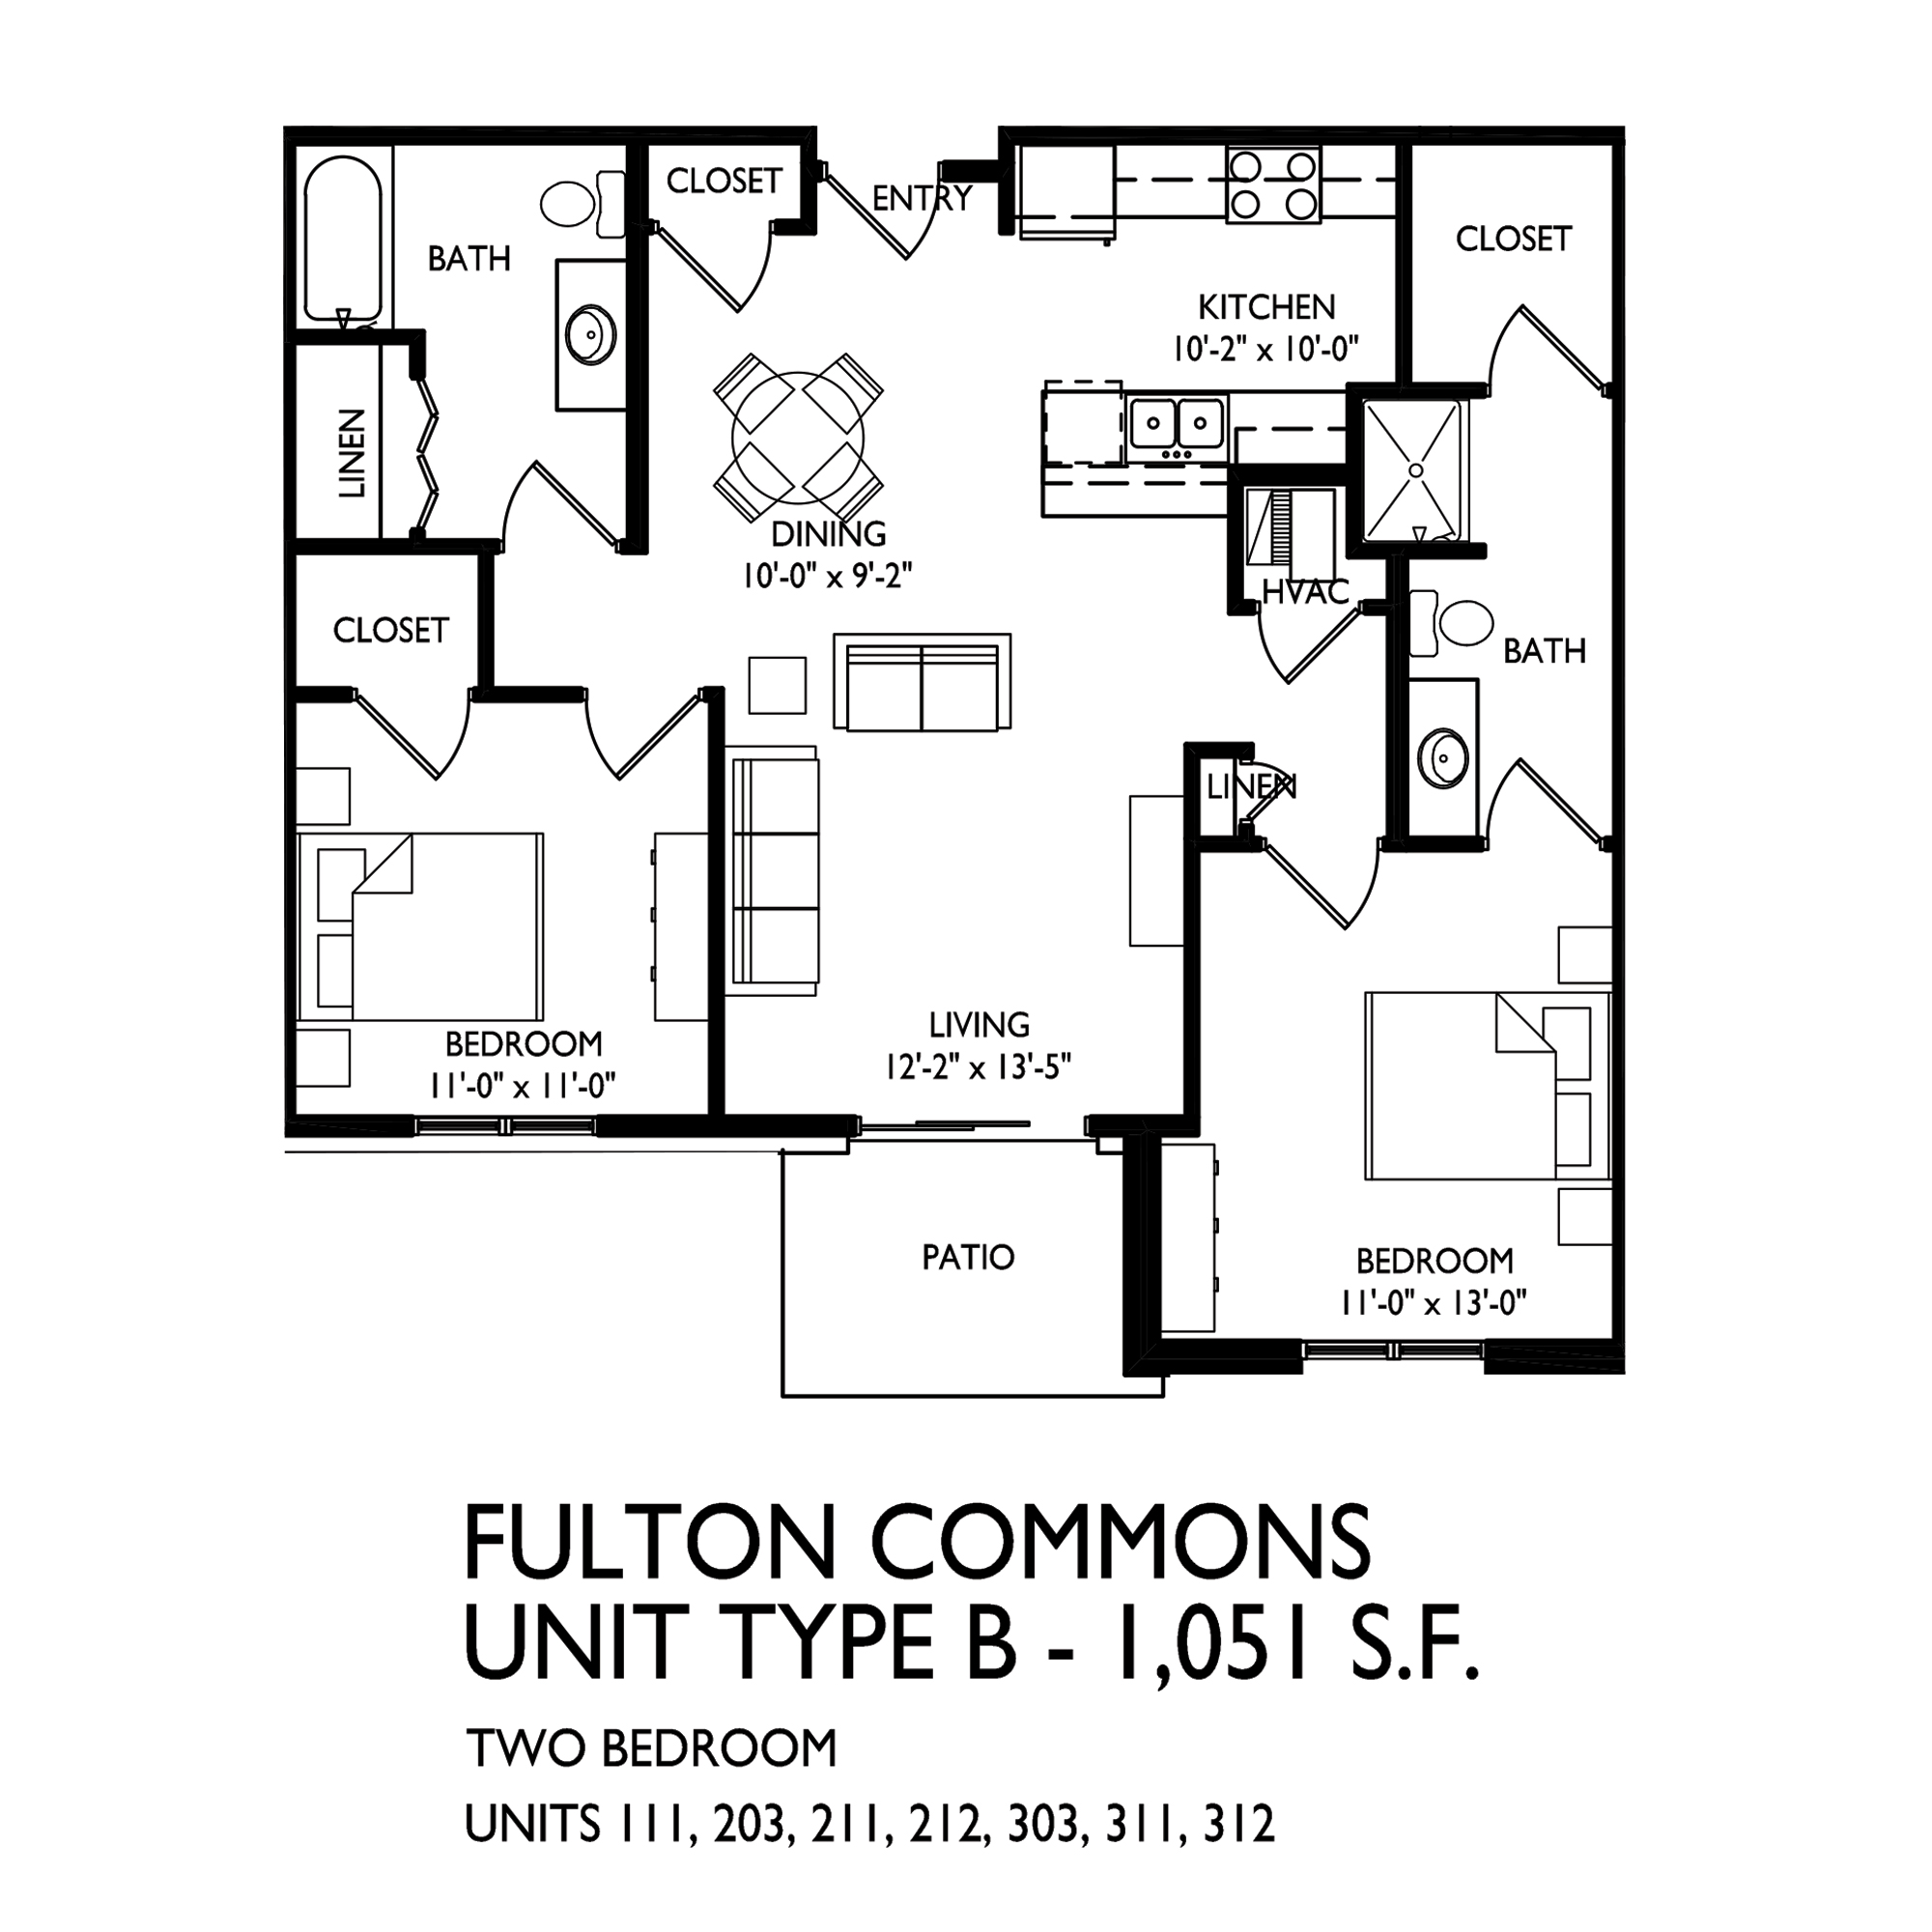 Unit House Plans on 2 house phones, rent house plans, house floor plans, best small house plans, small craftsman house plans, ranch house plans, unique small house plans,